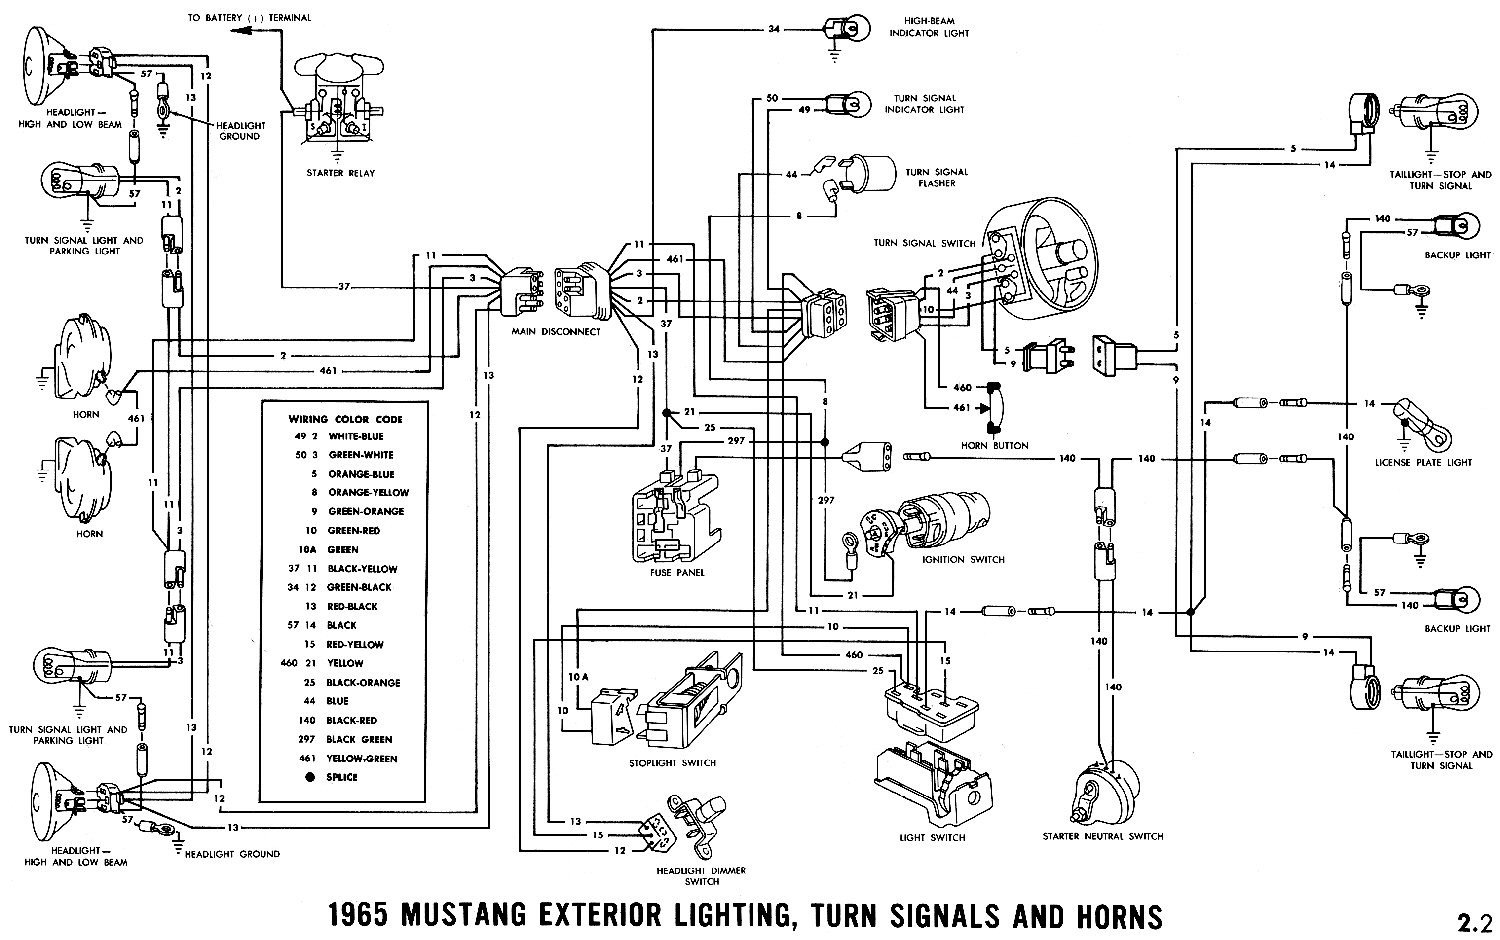 65 jeep cj5 ignition switch wiring smart wiring diagrams u2022 rh emgsolutions co Wiring Diagram for Jeep DJ 5 1970 1951 Willys Pickup Wiring Diagram